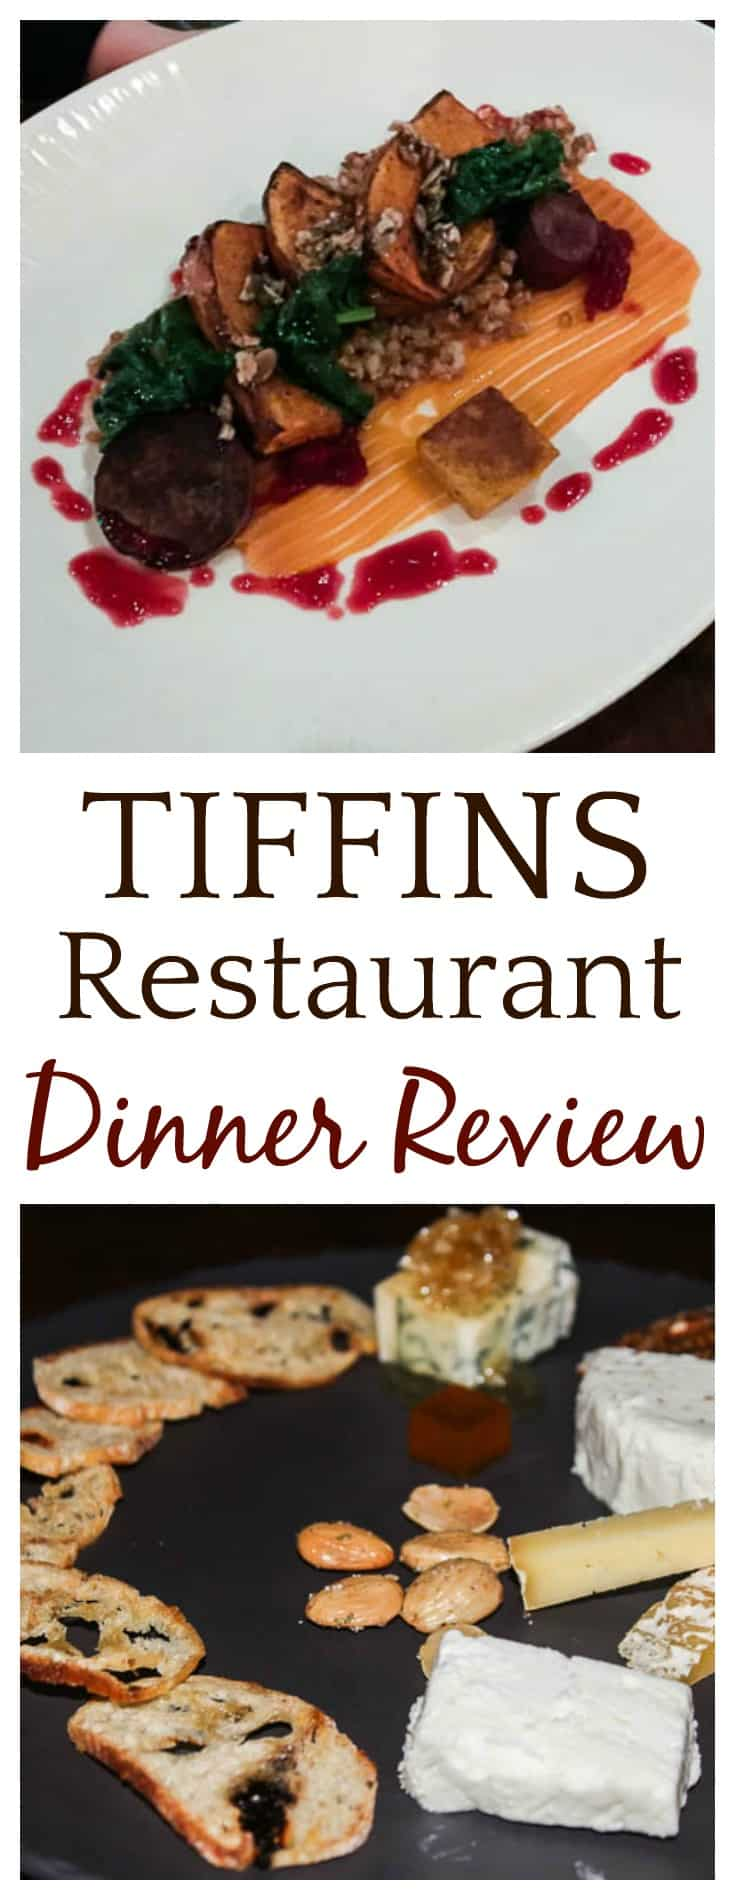 Tiffins restaurant dinner review november 2017 for Restaurants serving thanksgiving dinner near me 2017